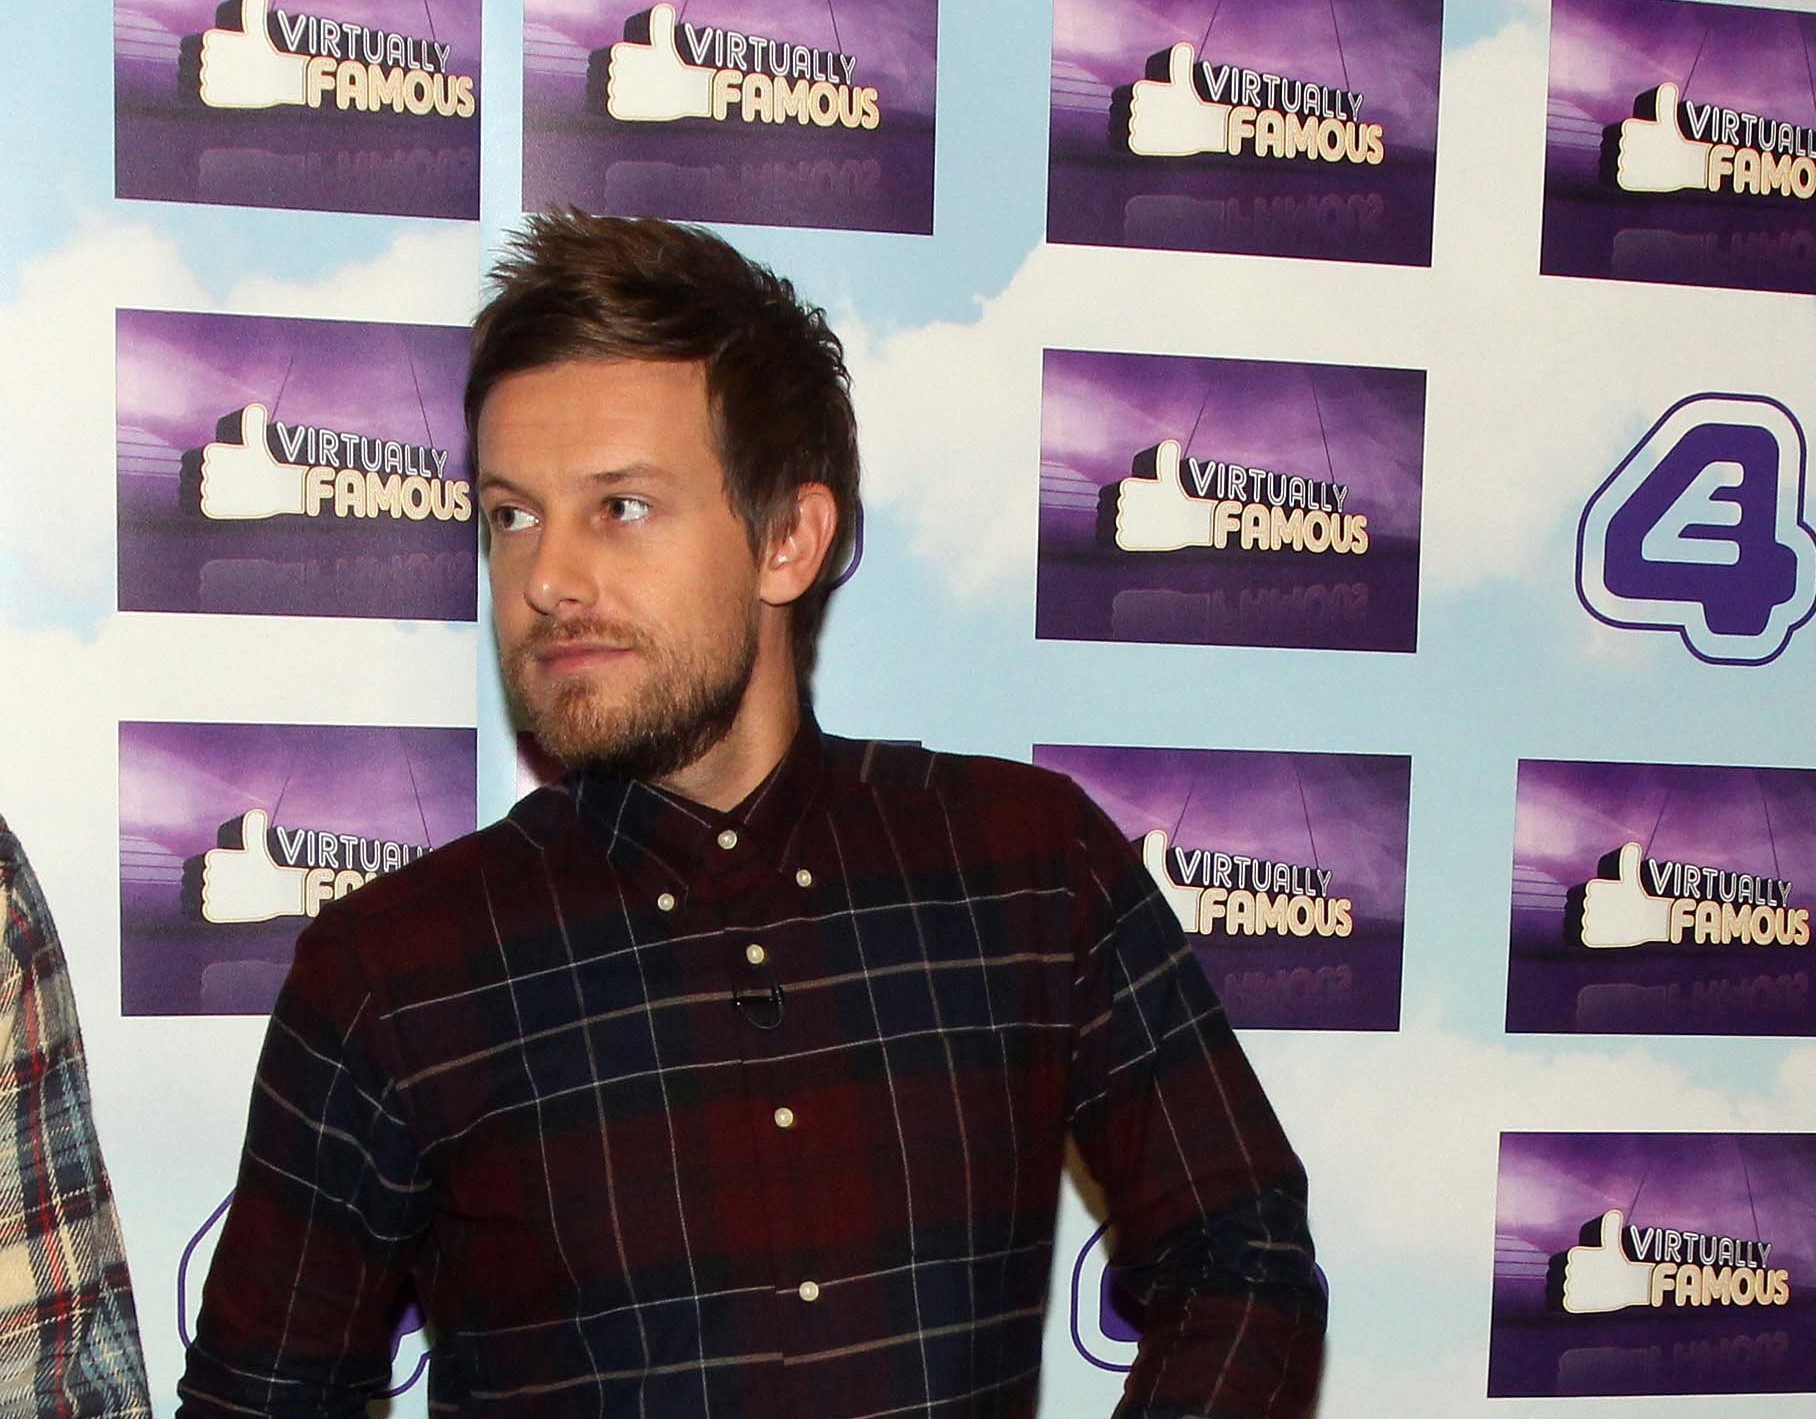 Strictly's Chris Ramsey was arrested in his underpants after mistaken identity